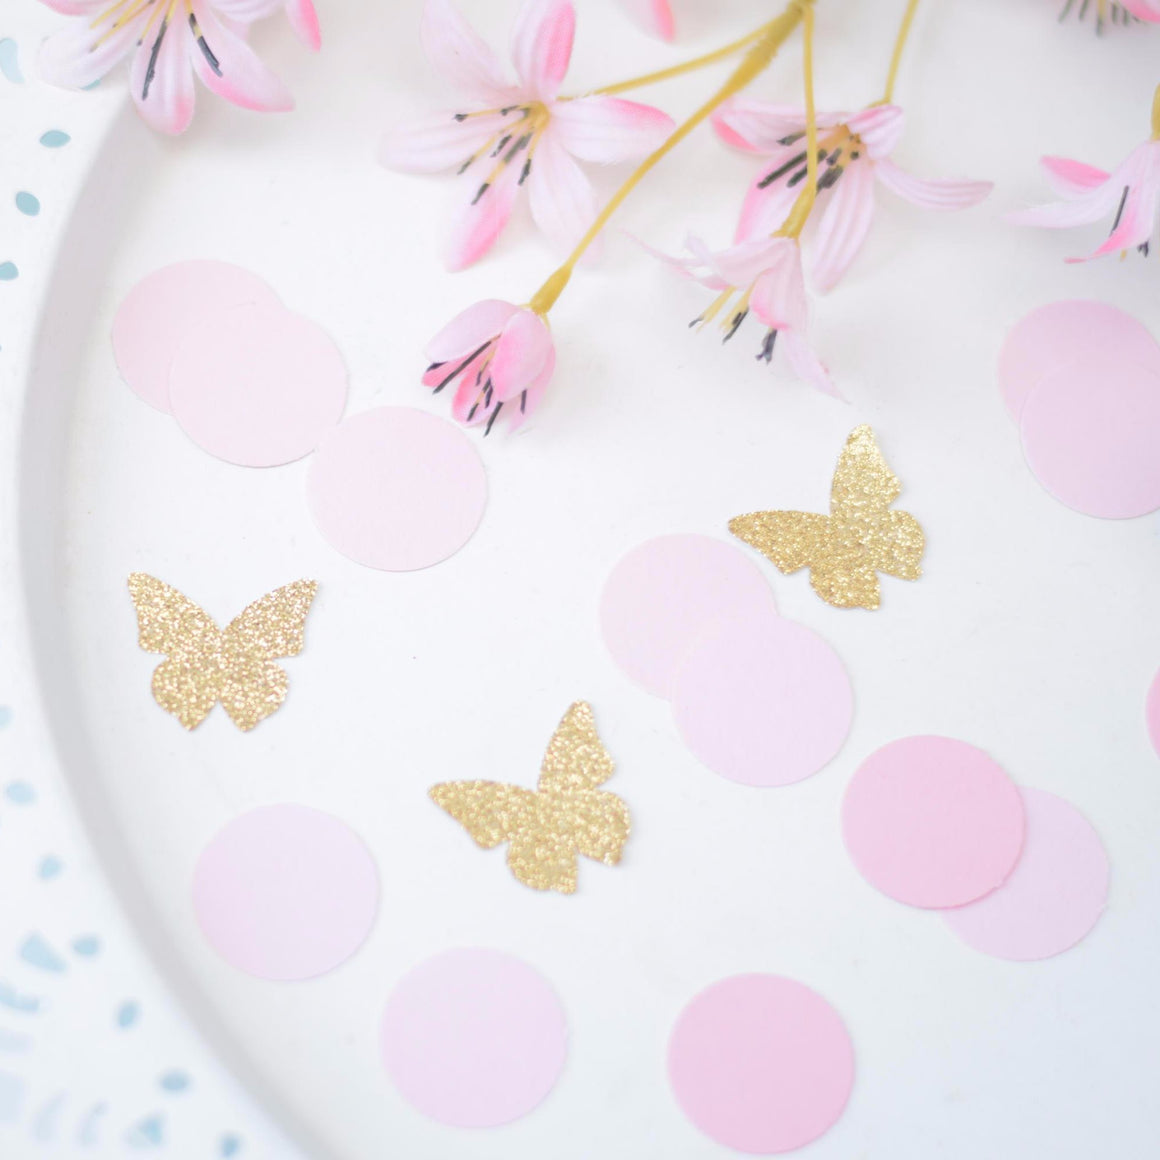 gold sparkle butterflies and pink circle confetti on white background